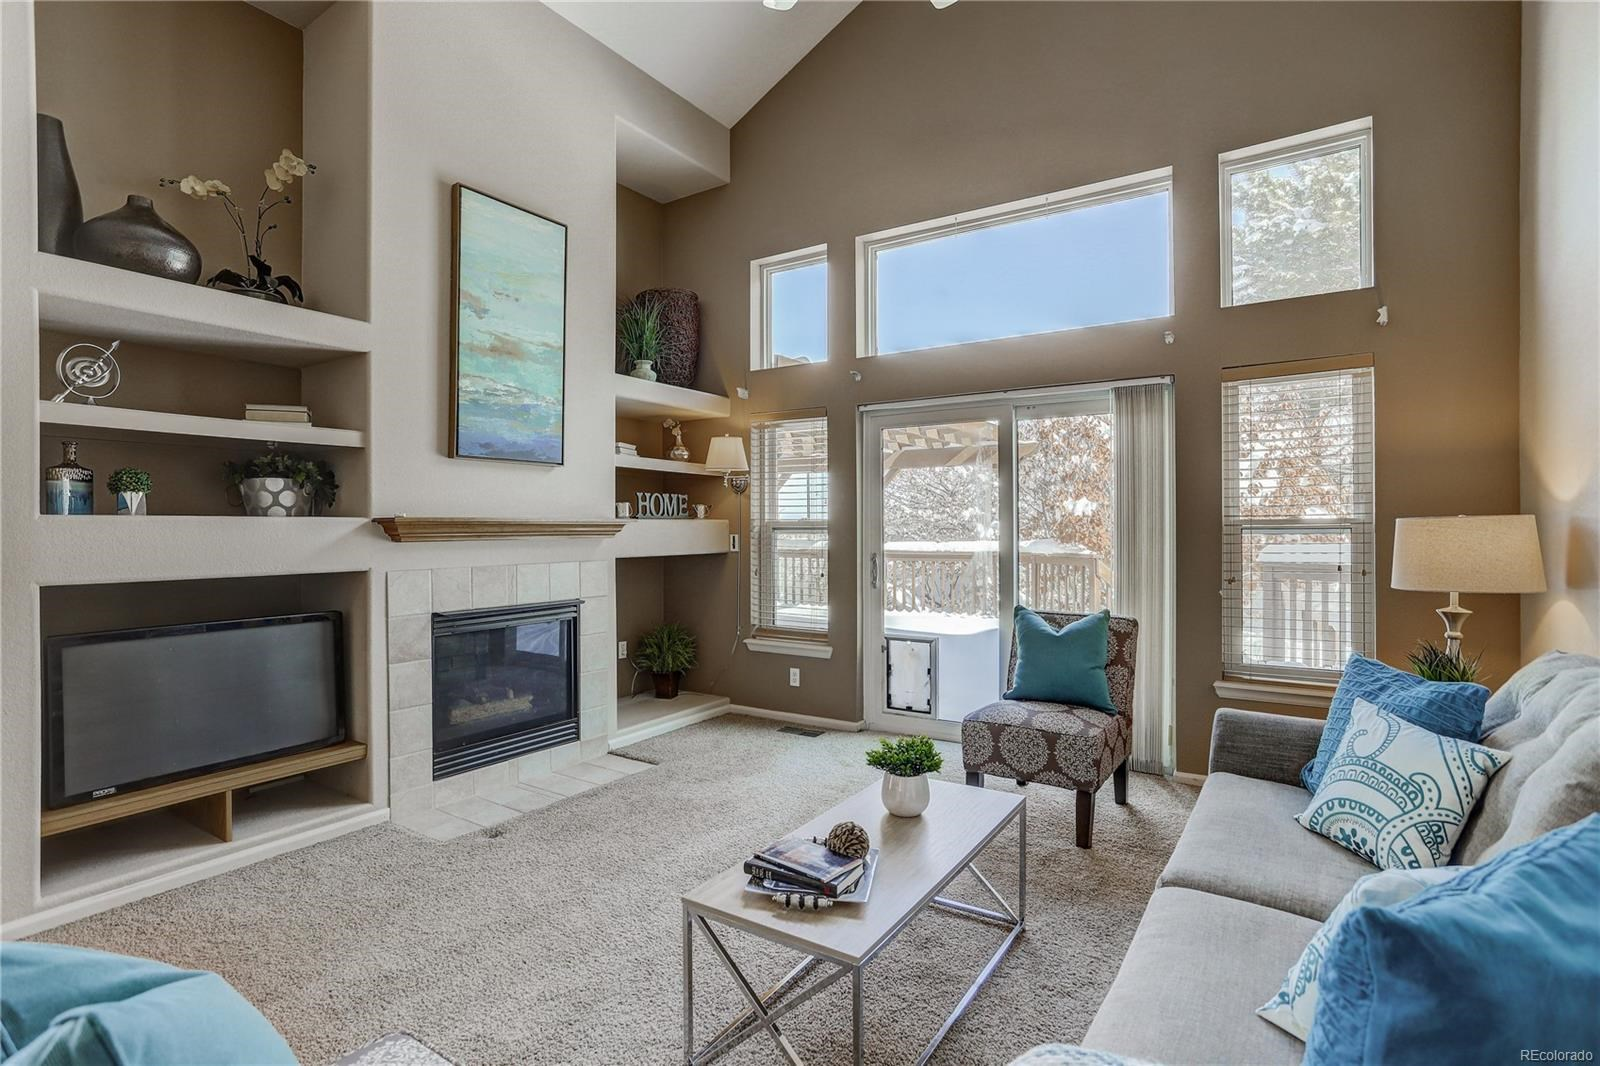 MLS# 8327774 - 13 - 806 W 127th Court, Westminster, CO 80234